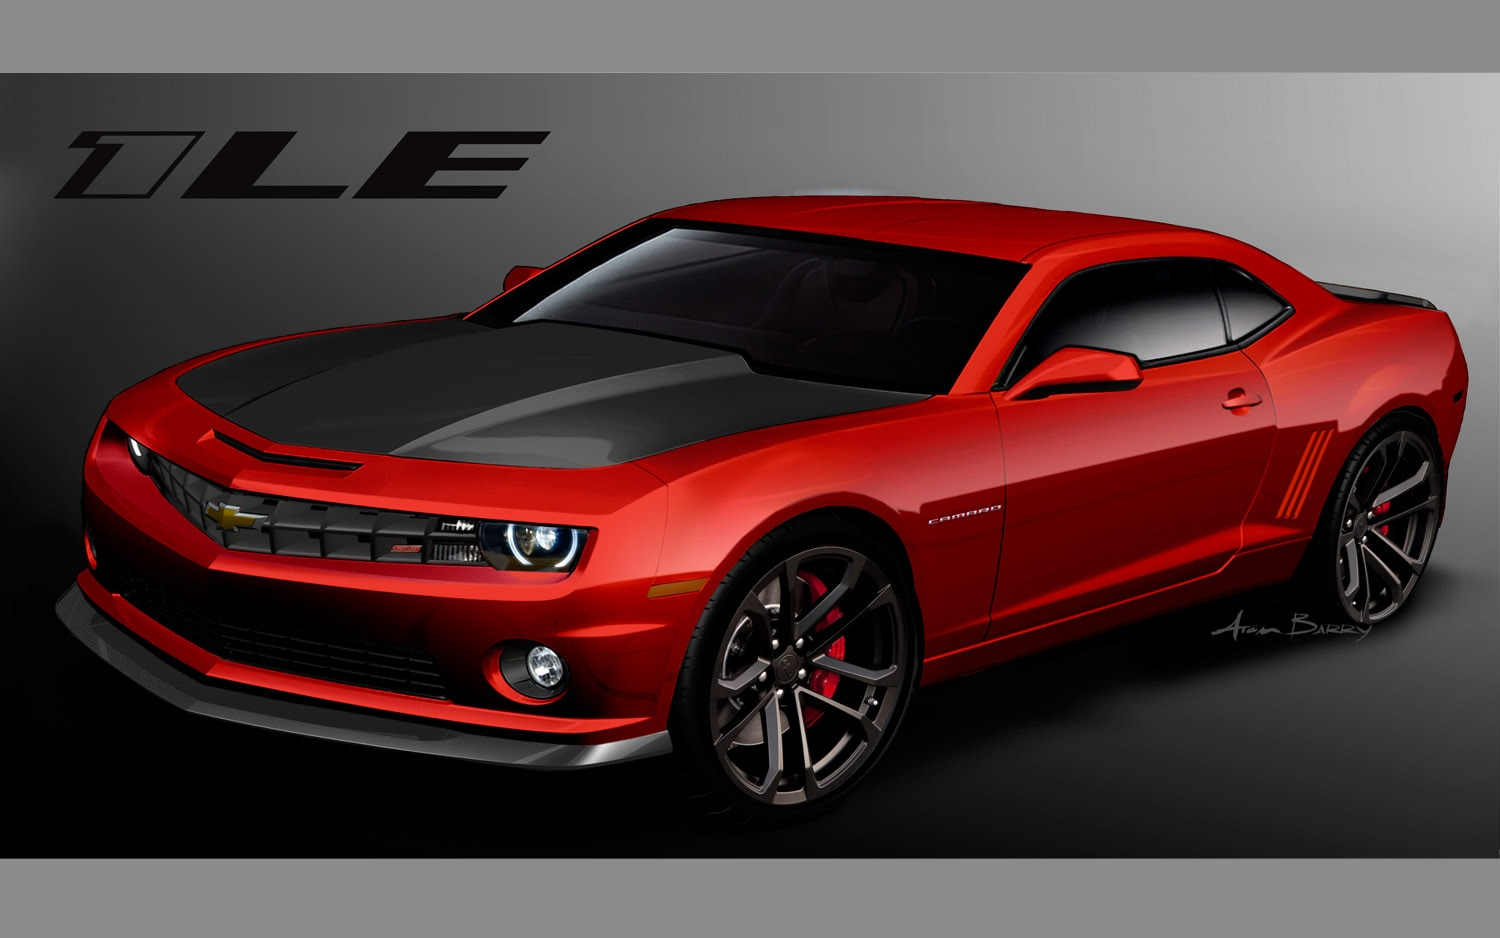 2013 Chevrolet Camaro 1L3 Rendering Front Three Quarter1